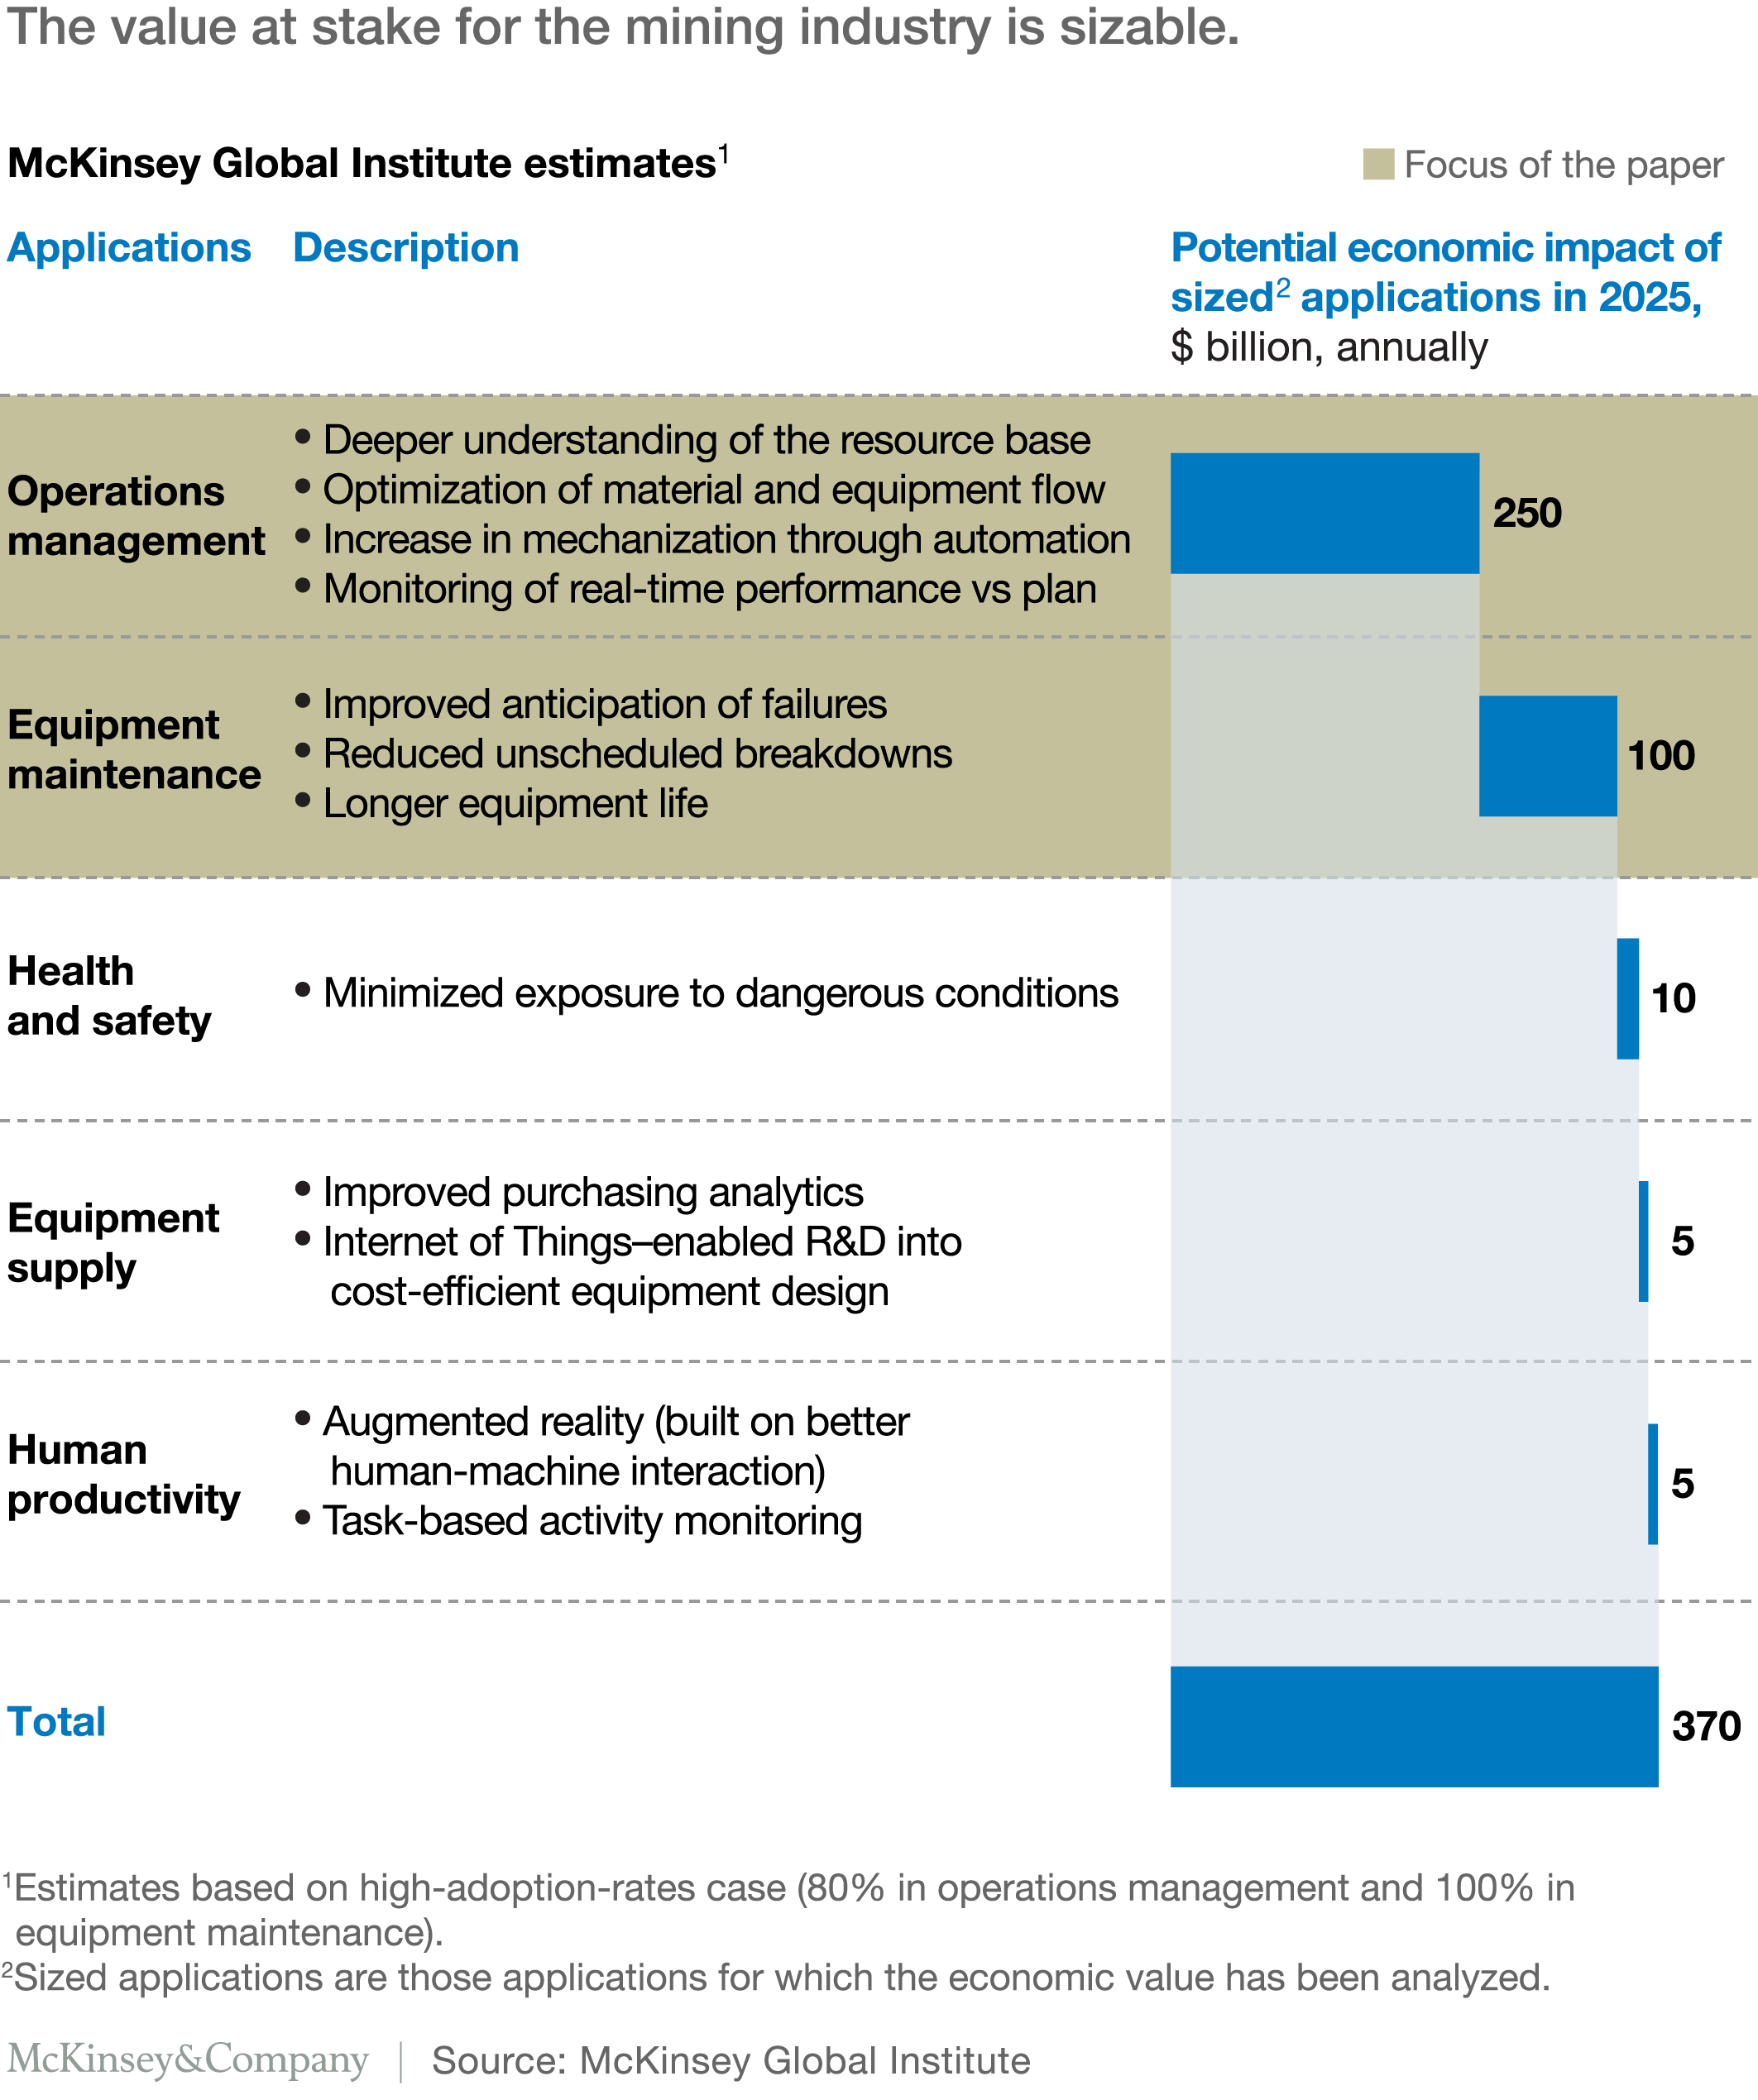 How digital innovation can improve mining productivity mckinsey the value at stake for the mining industry is sizable nvjuhfo Image collections